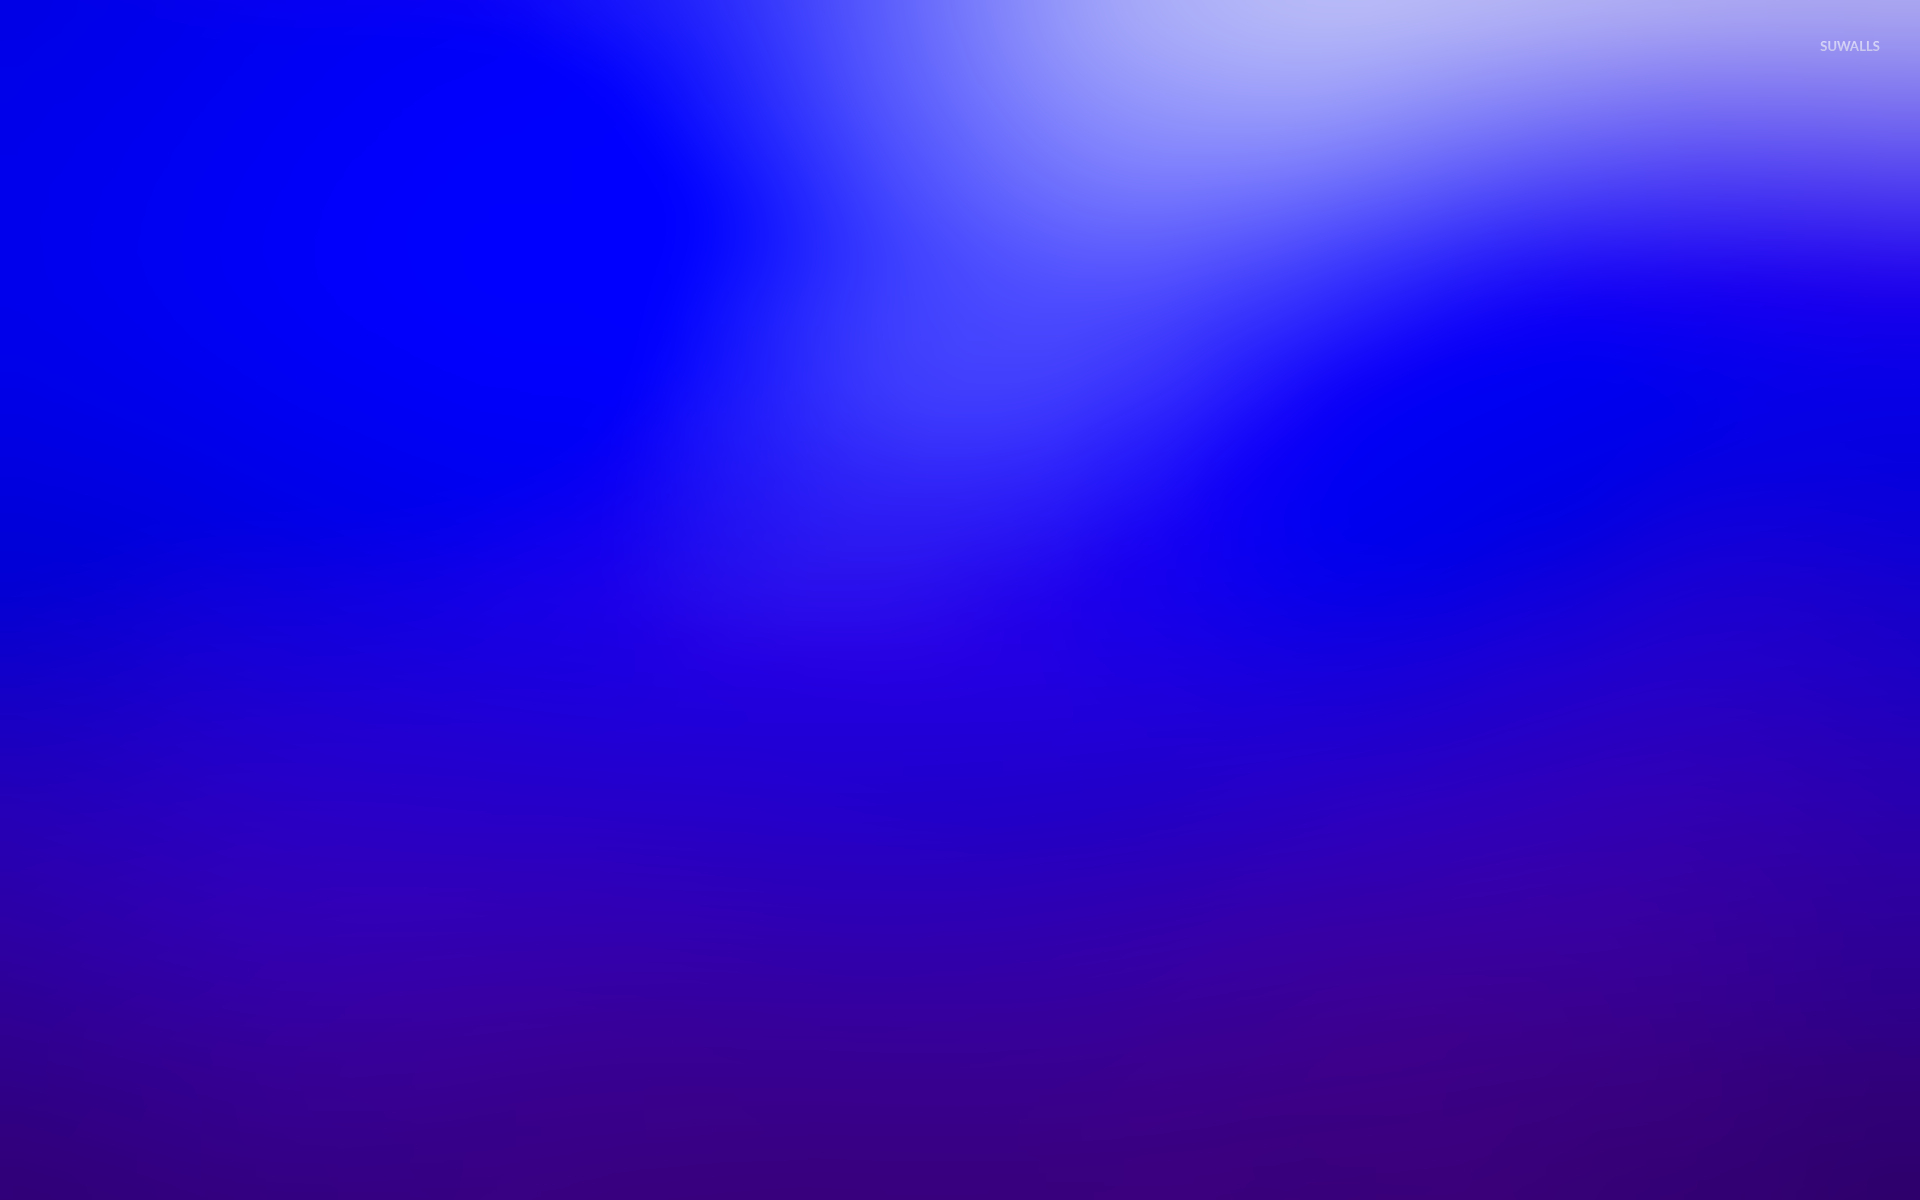 Blue Gradient 2 Wallpaper Abstract Wallpapers 26951